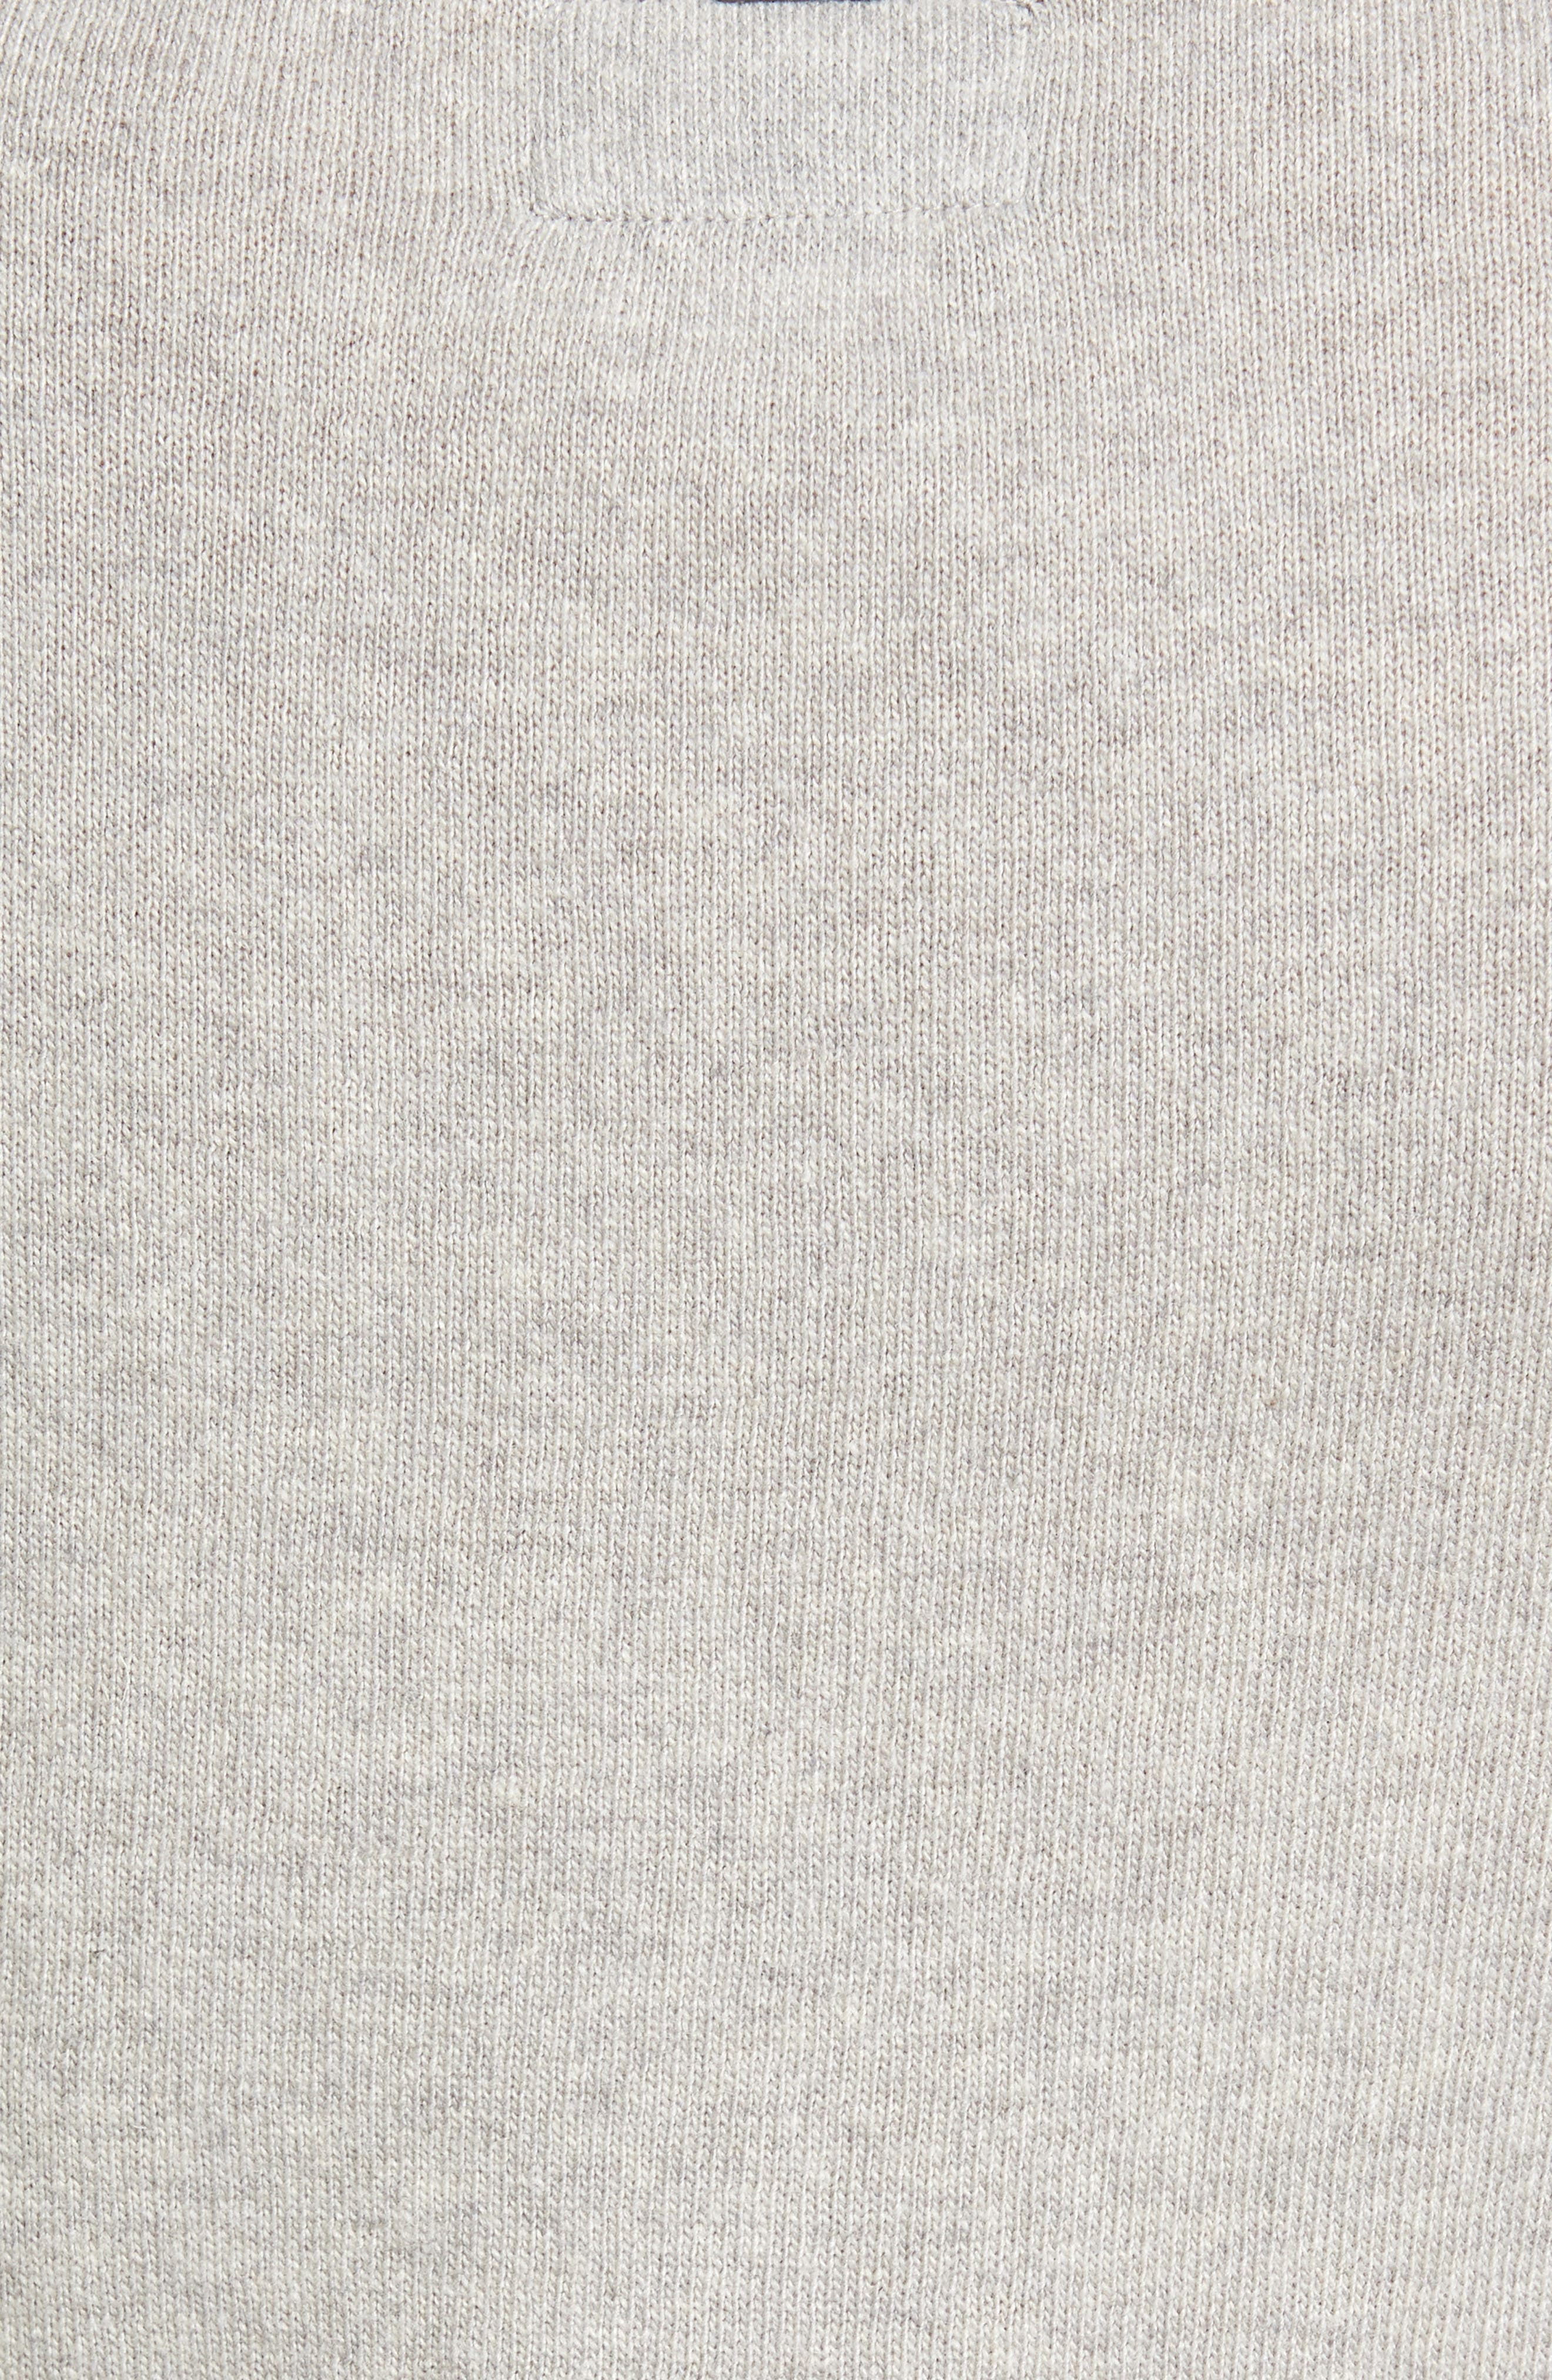 Mill Wool Blend Boatneck Sweater,                             Alternate thumbnail 5, color,